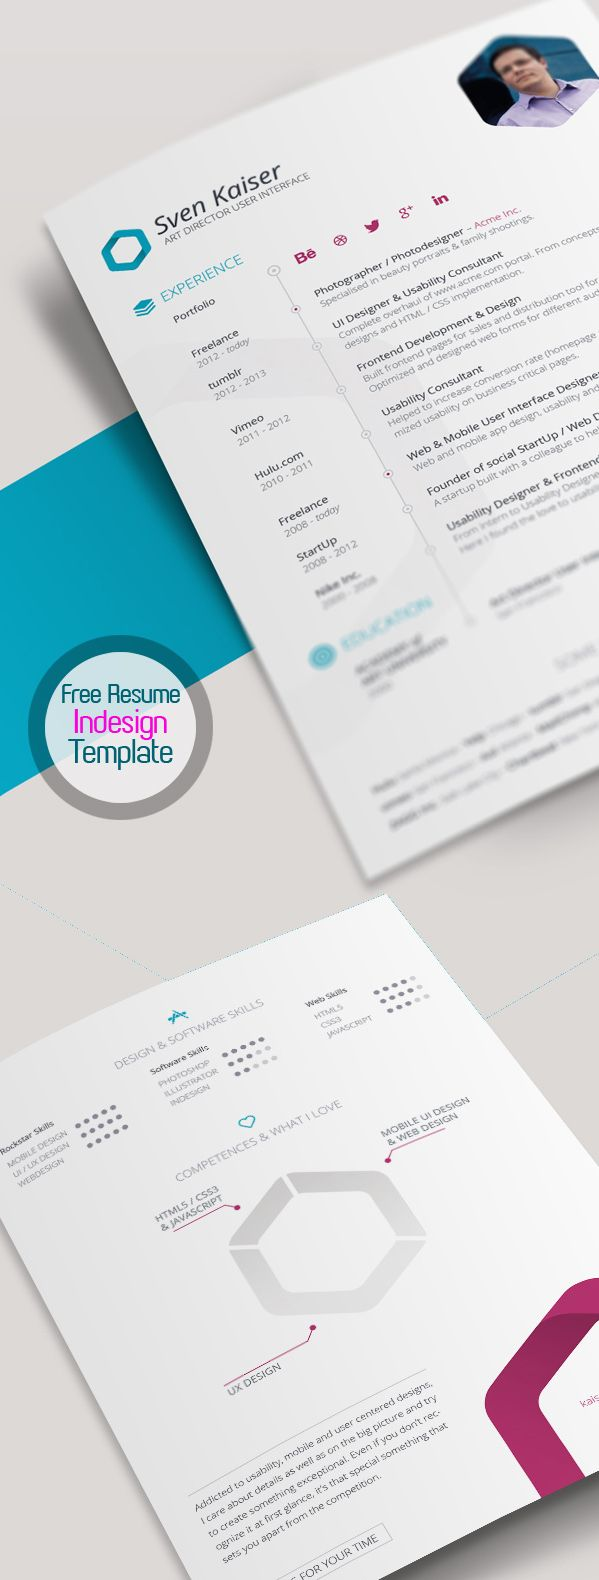 Free Resume Template for InDesign (Vita / CV) | Curriculum Vitae ...